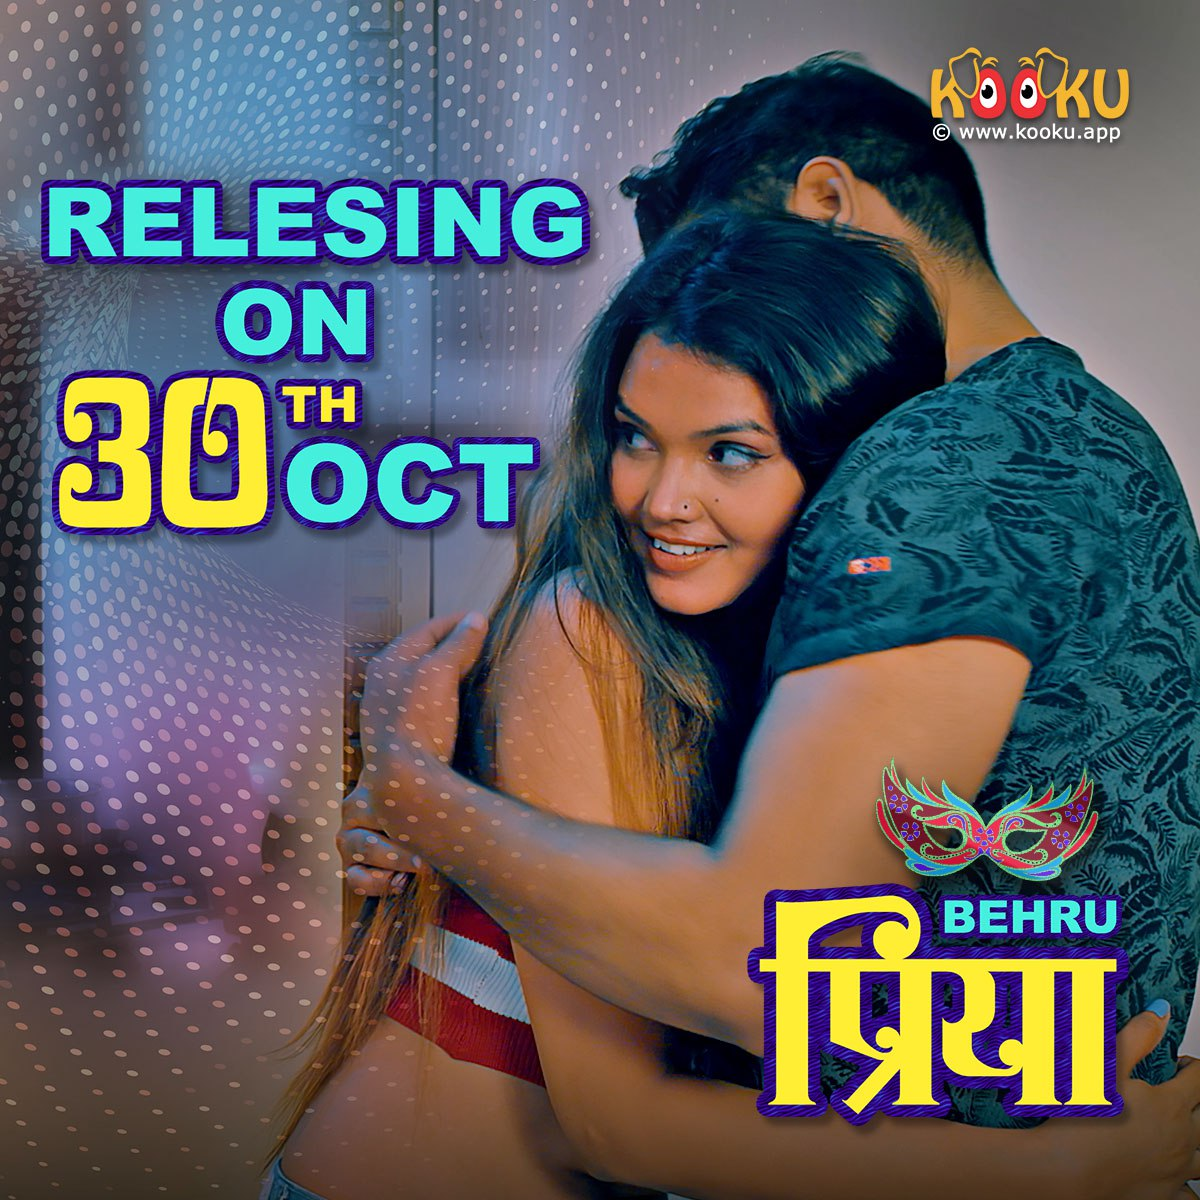 Behrupriya 2020 S01 Hindi Kooku App Web Series Official Trailer 1080p HDRip Download